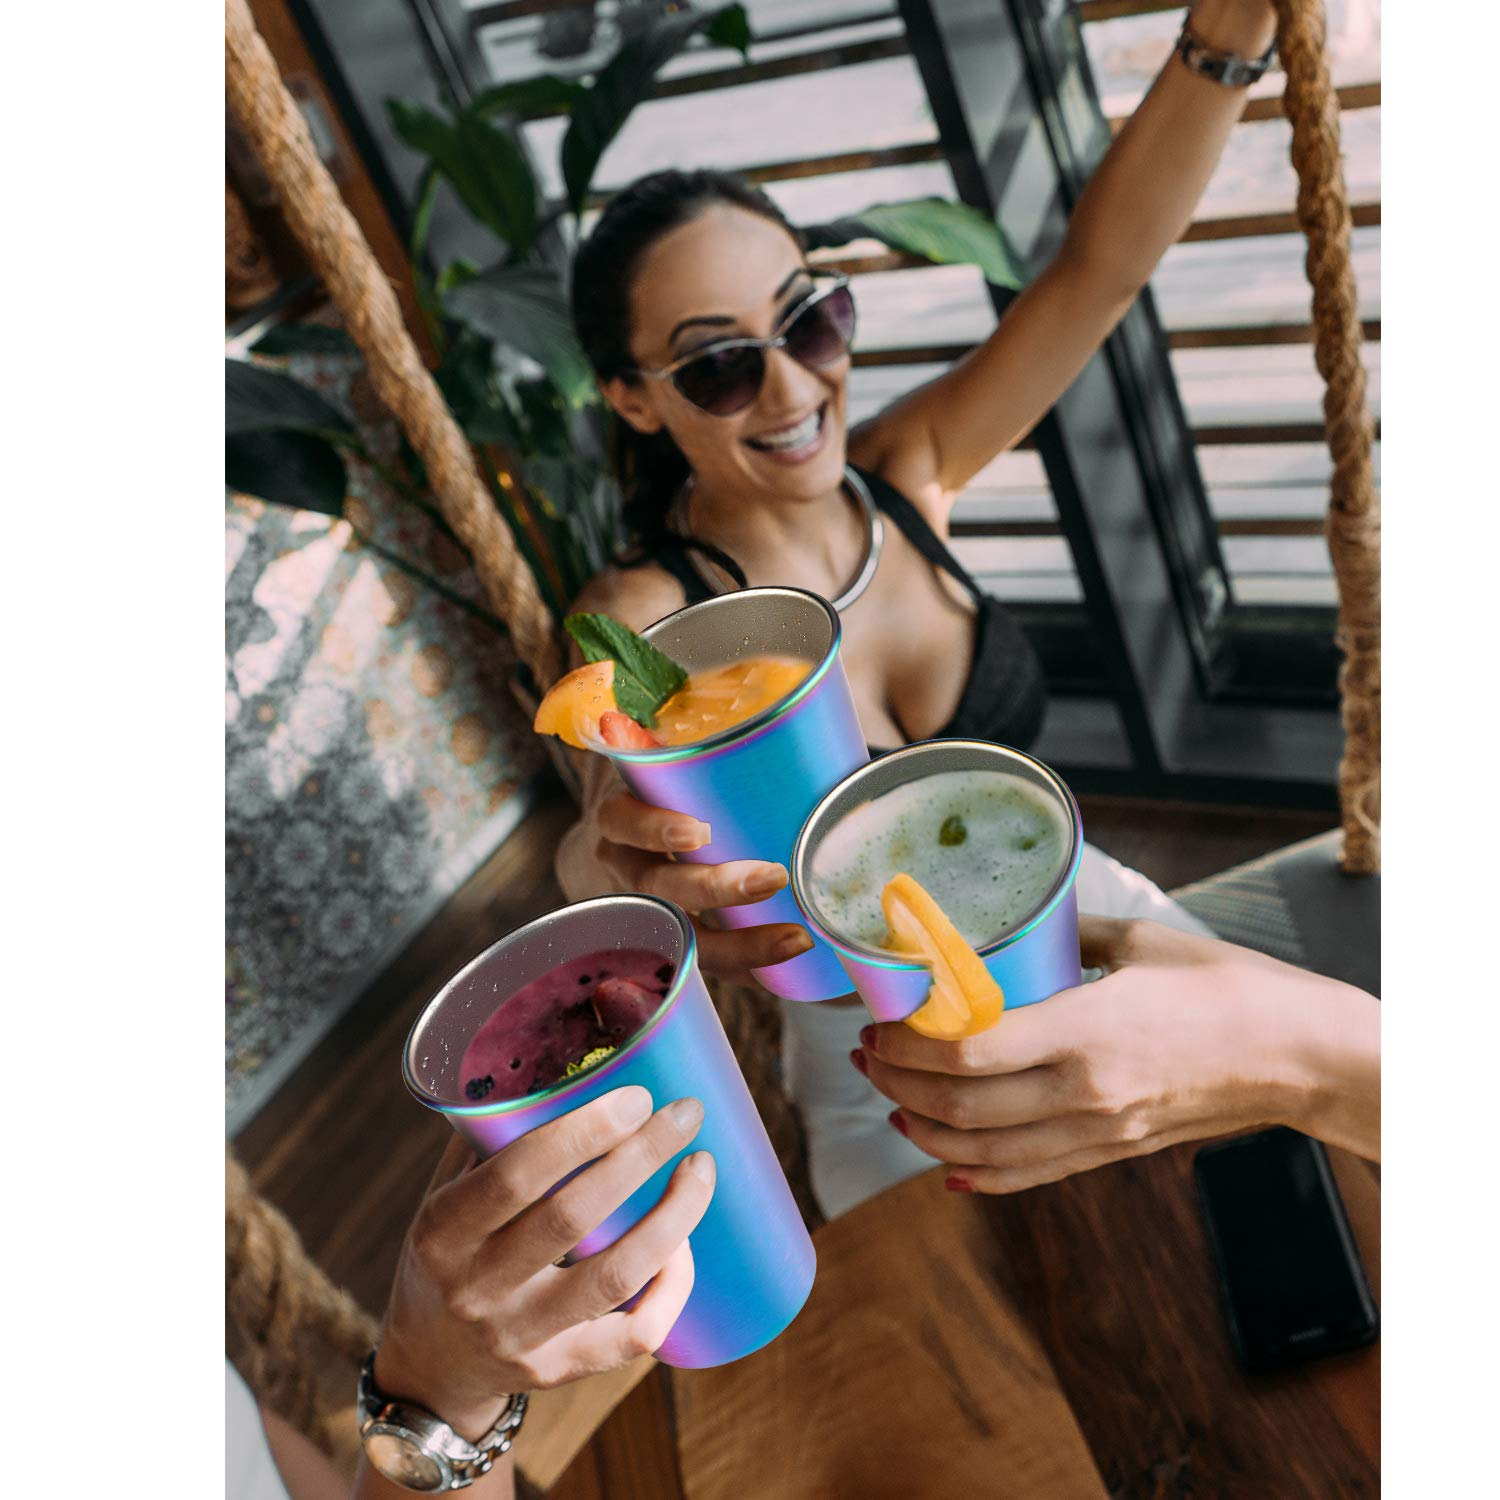 Rainbow Party Cups, Kereda Stainless Steel Cups 16oz 5-Pack Premium Drinking Glasses Unbreakable Colorful Tumblers BPA Free Eco Friendly by KEREDA (Image #6)